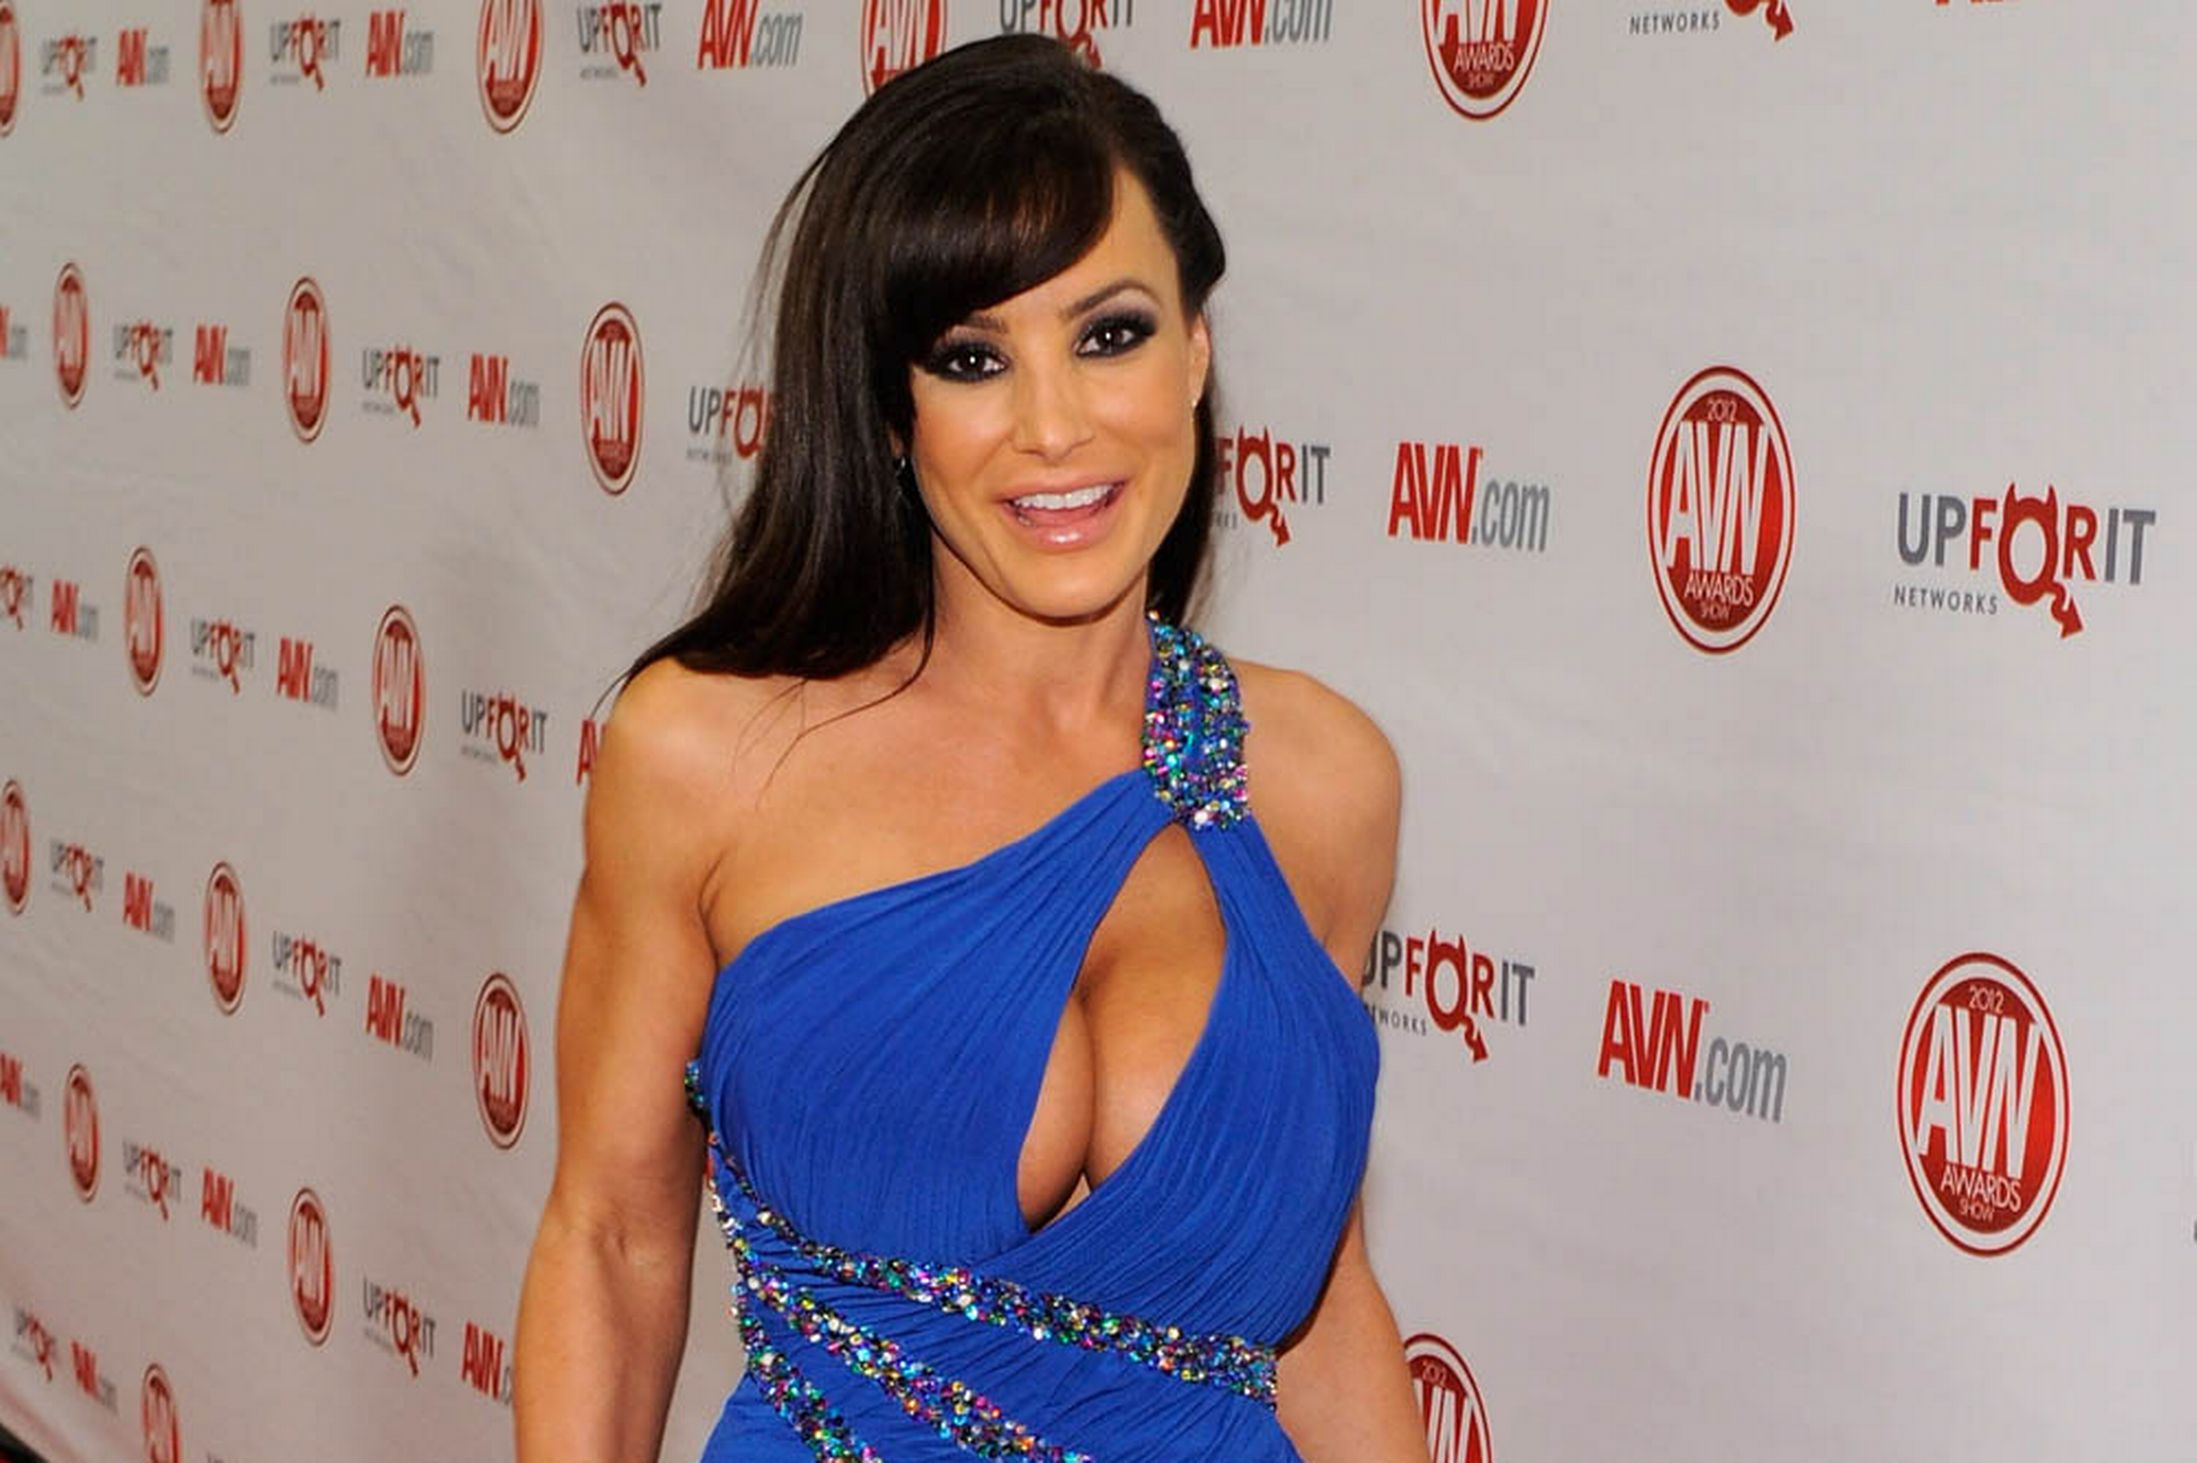 Lisa Ann Biography and Net Worth, Career, Relationship and